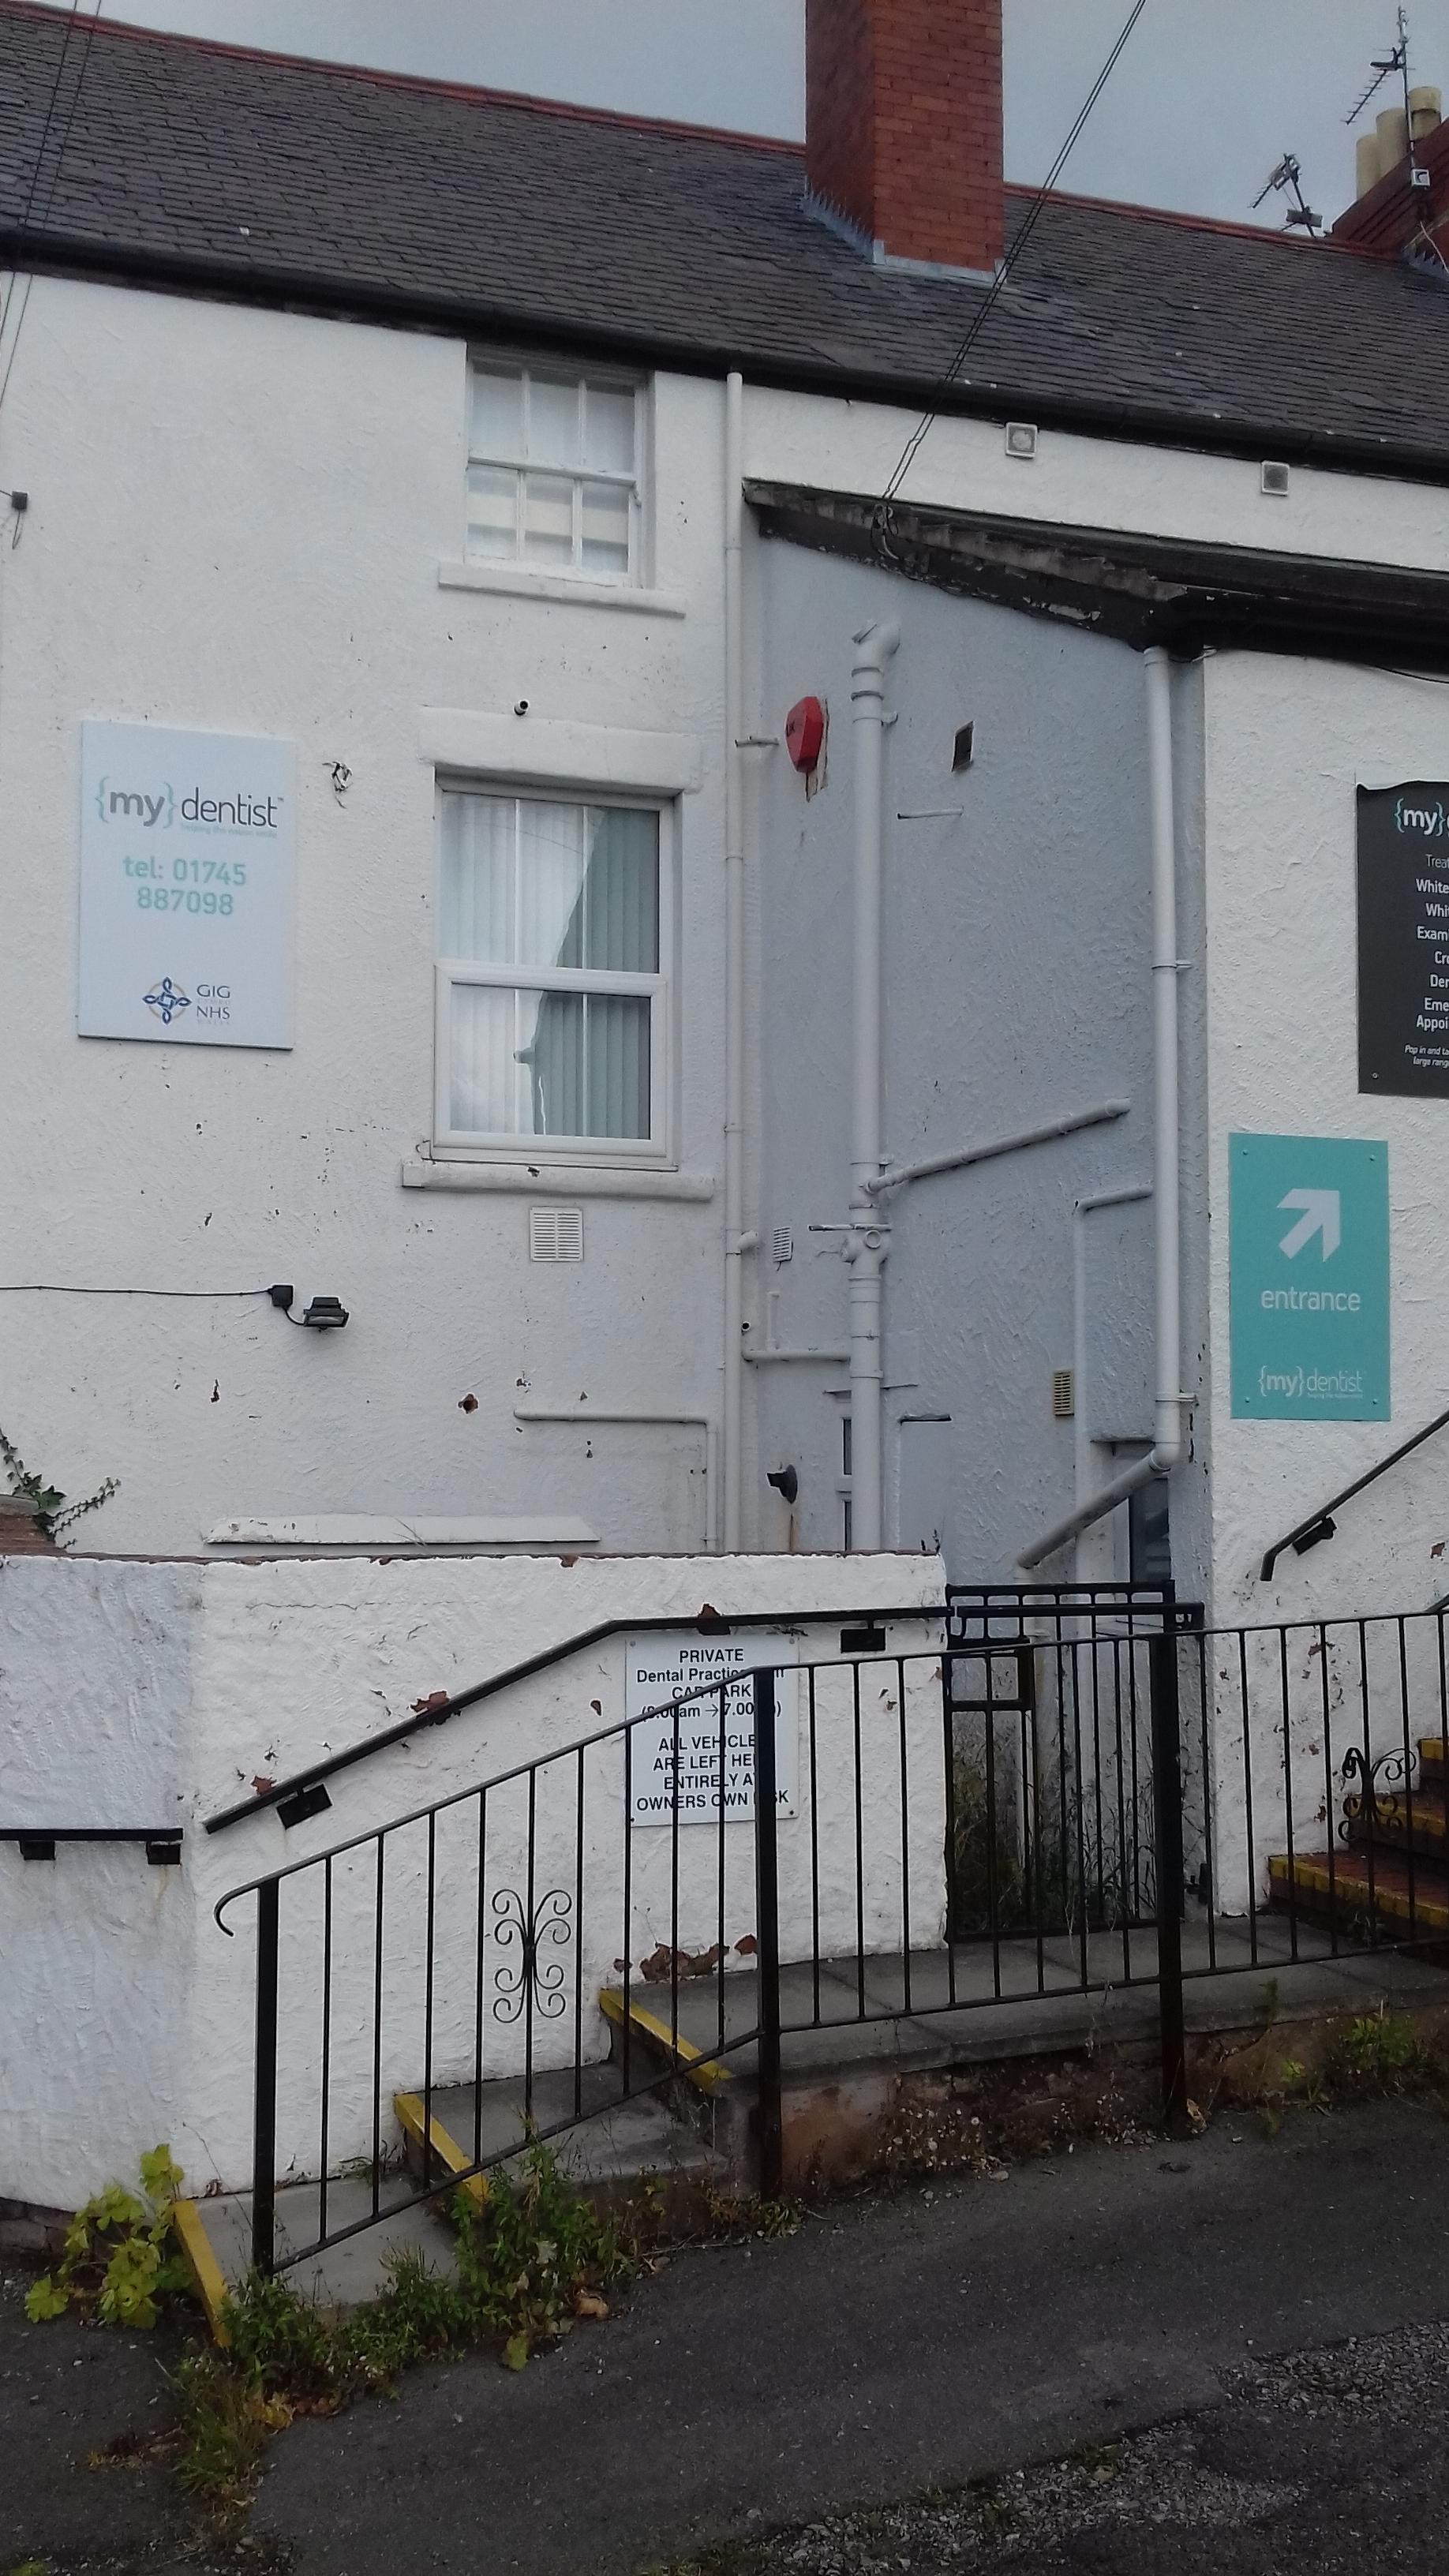 Fern Avenue dental surgery in Prestatyn